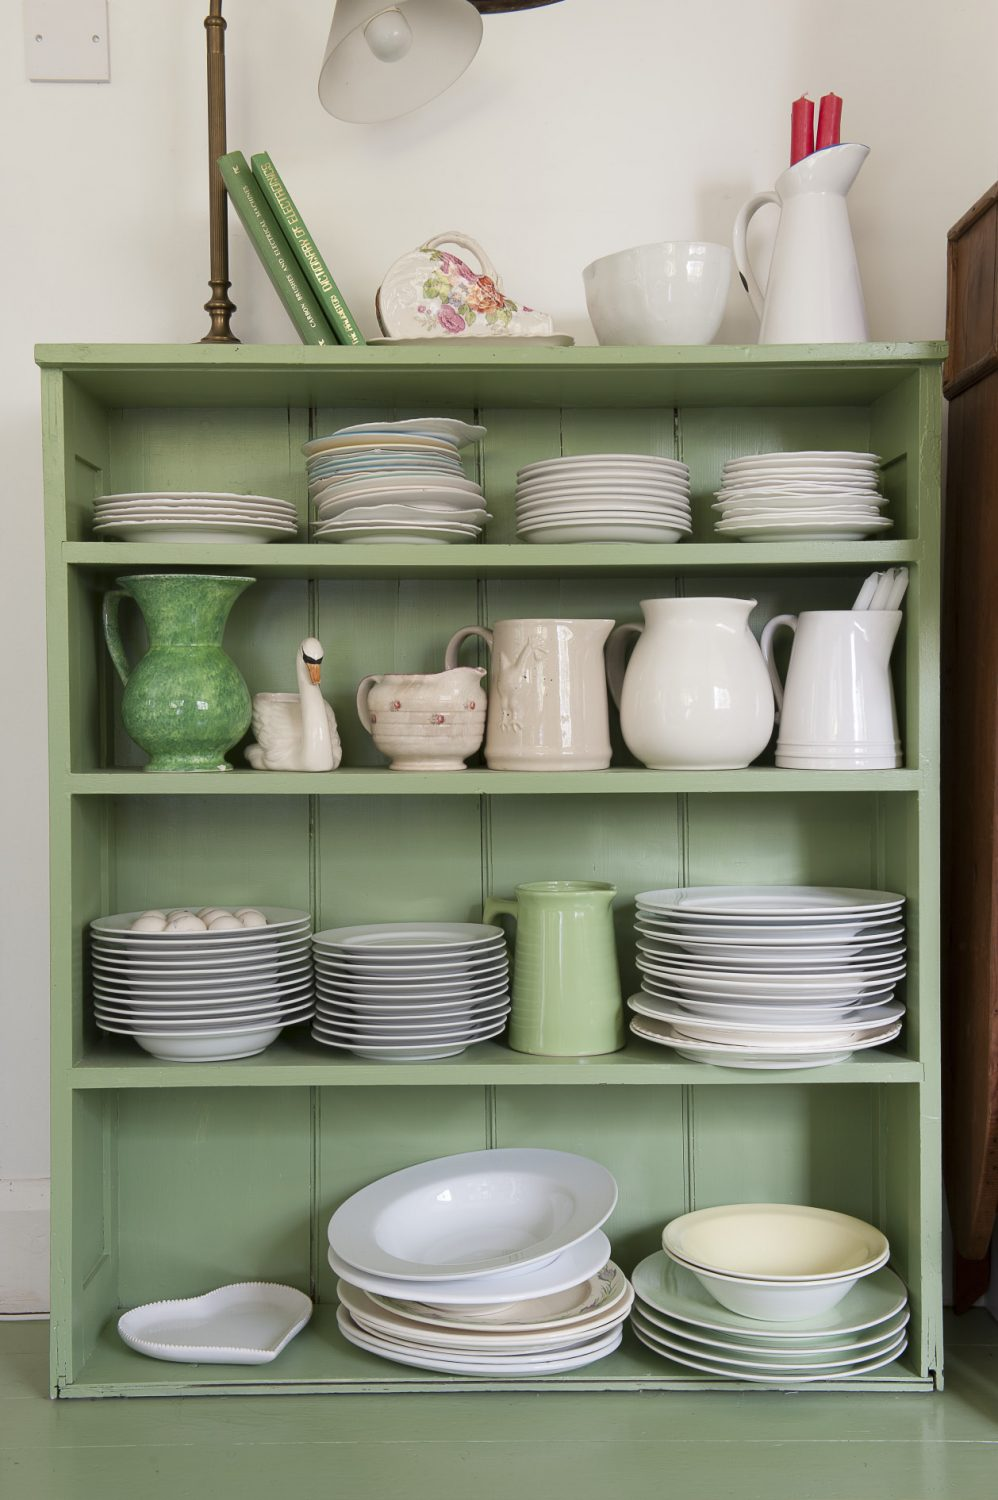 Stacks of pristine plates and fresh eggs from Liz's chickens are easily accessible from this painted green shelving unit